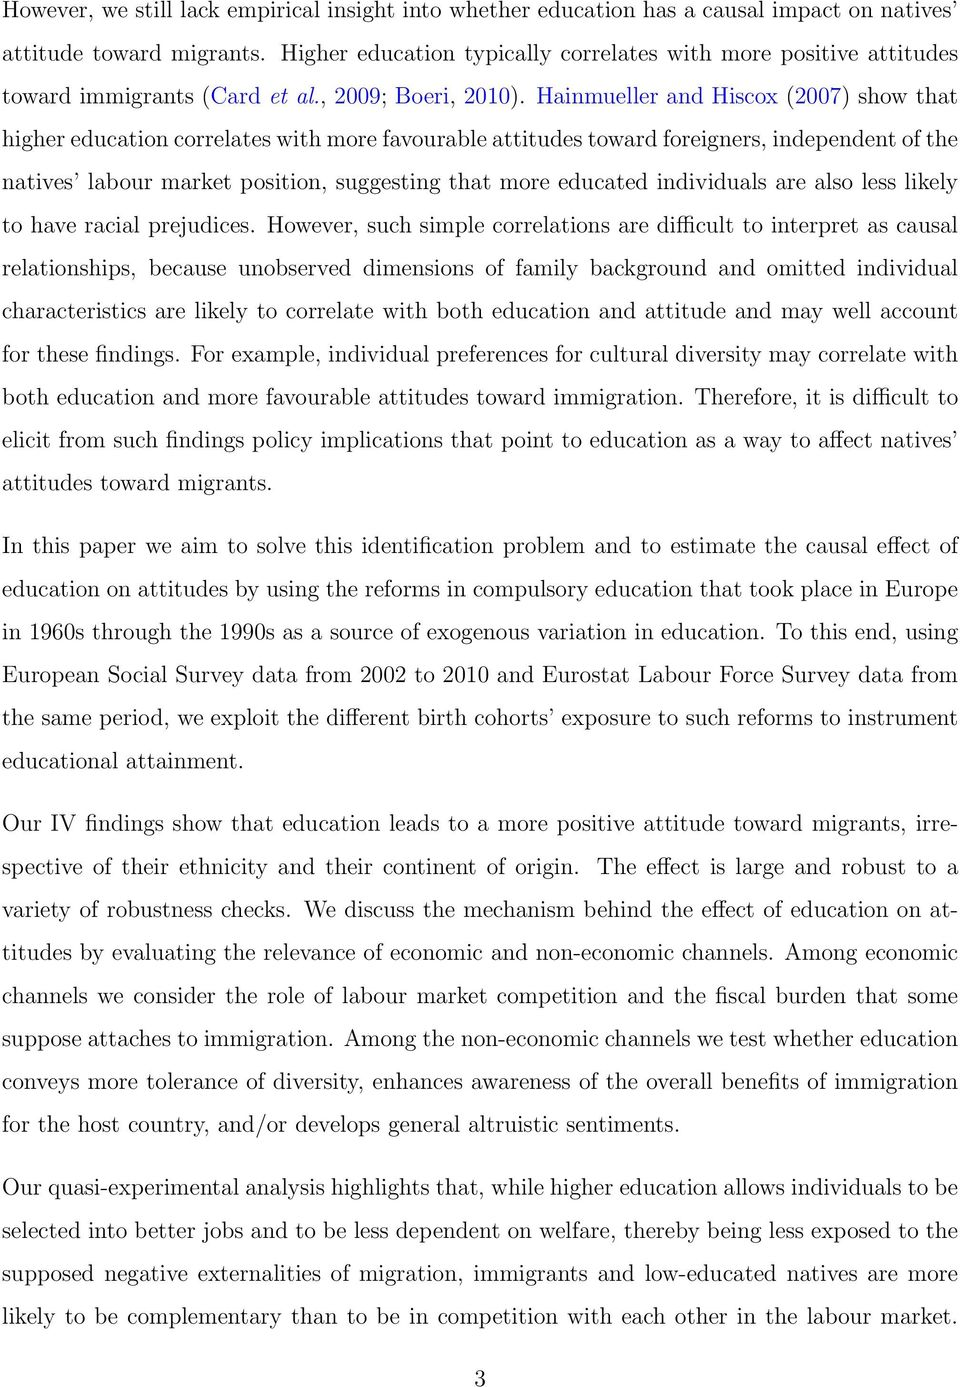 Hainmueller and Hiscox (2007) show that higher education correlates with more favourable attitudes toward foreigners, independent of the natives labour market position, suggesting that more educated